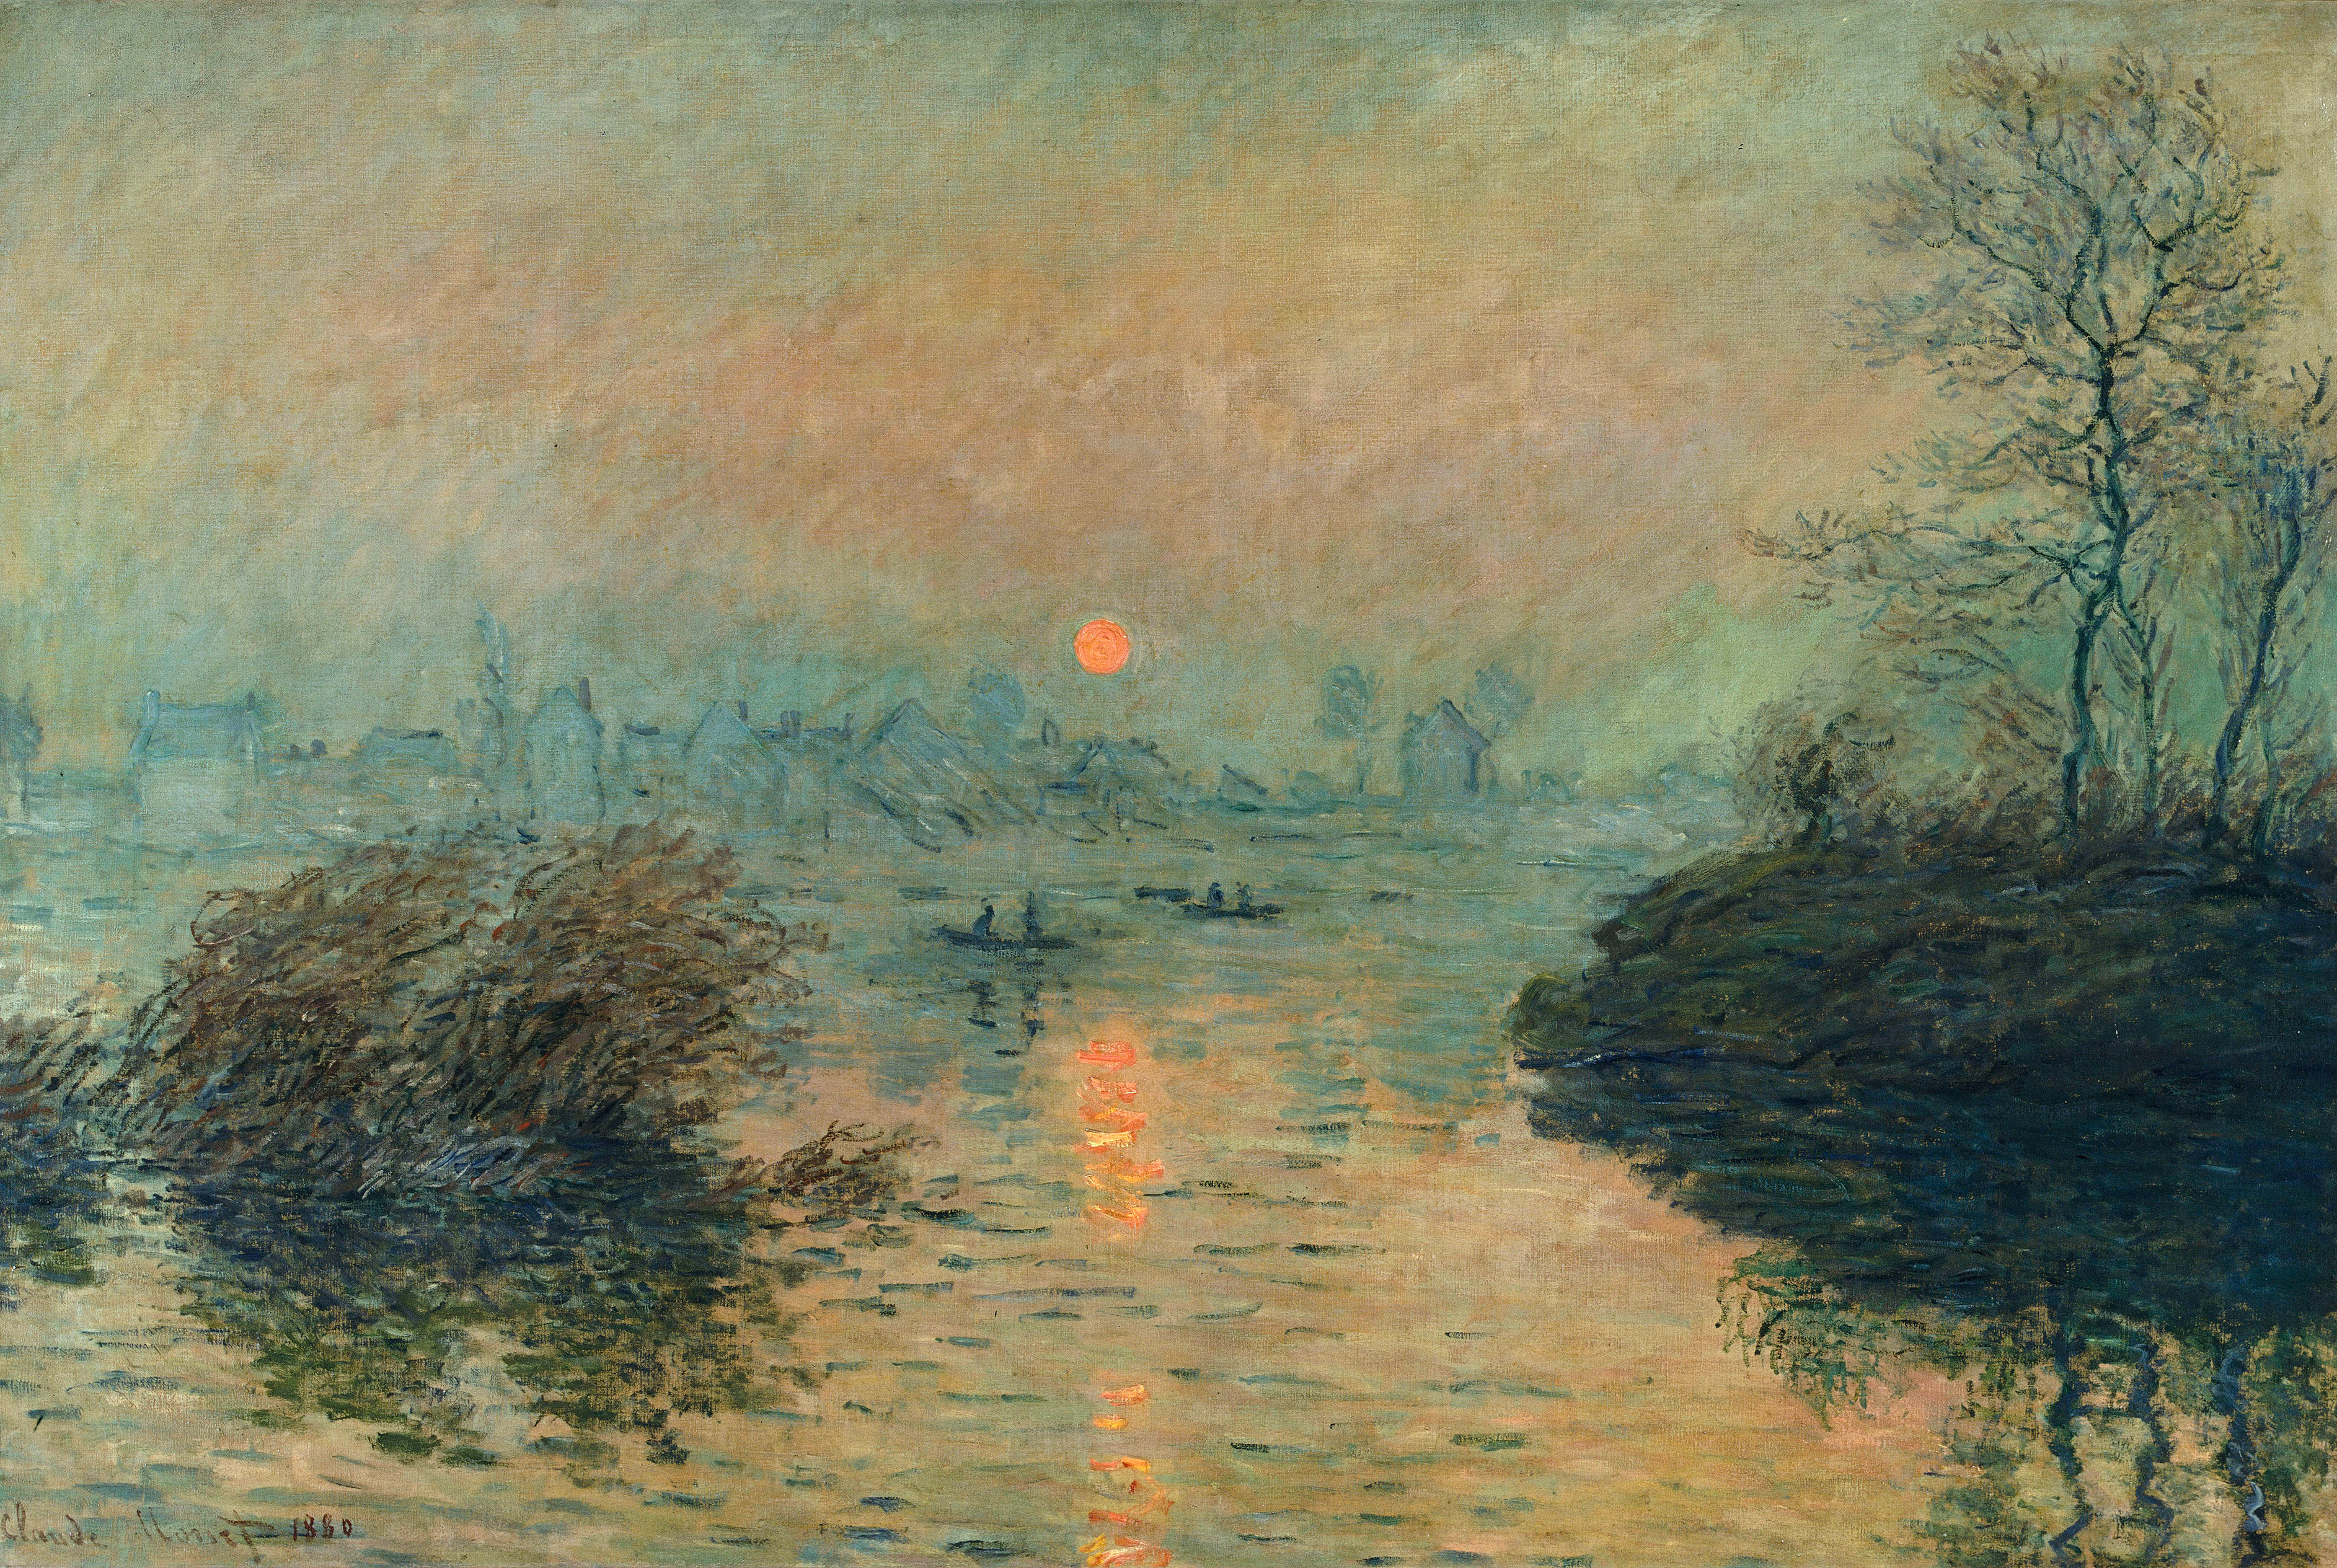 an analysis of the impressionist painting grainstack sunset by claude monet A painting from claude monet's acclaimed grainstack series fetches $1088 million at christie's new york auction of impressionist and modern art.